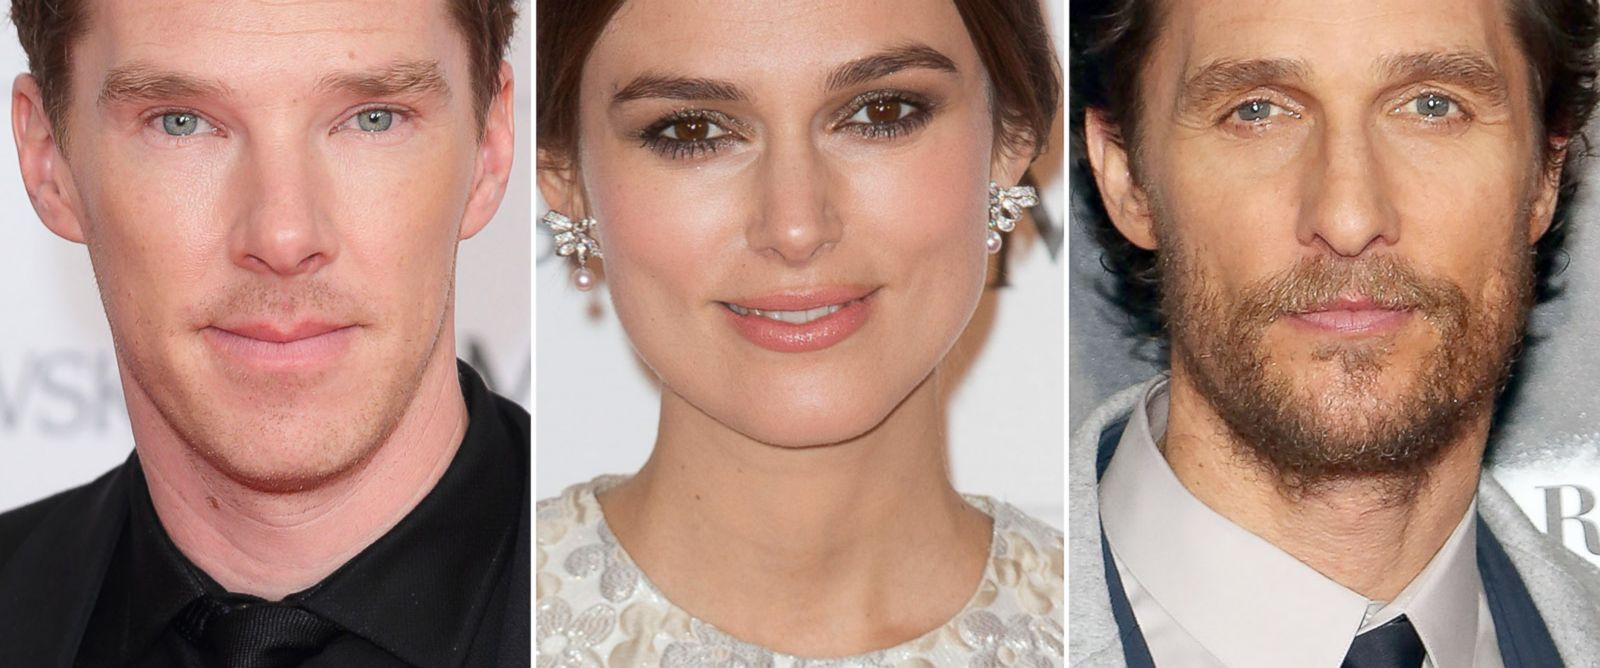 PHOTO: Benedict Cumberbatch and Keira Knightley attend an event in London, England on Dec. 7, 2014 and Matthew McConaughey is seen at a movie premiere on Nov. 3, 2014 in New York City.